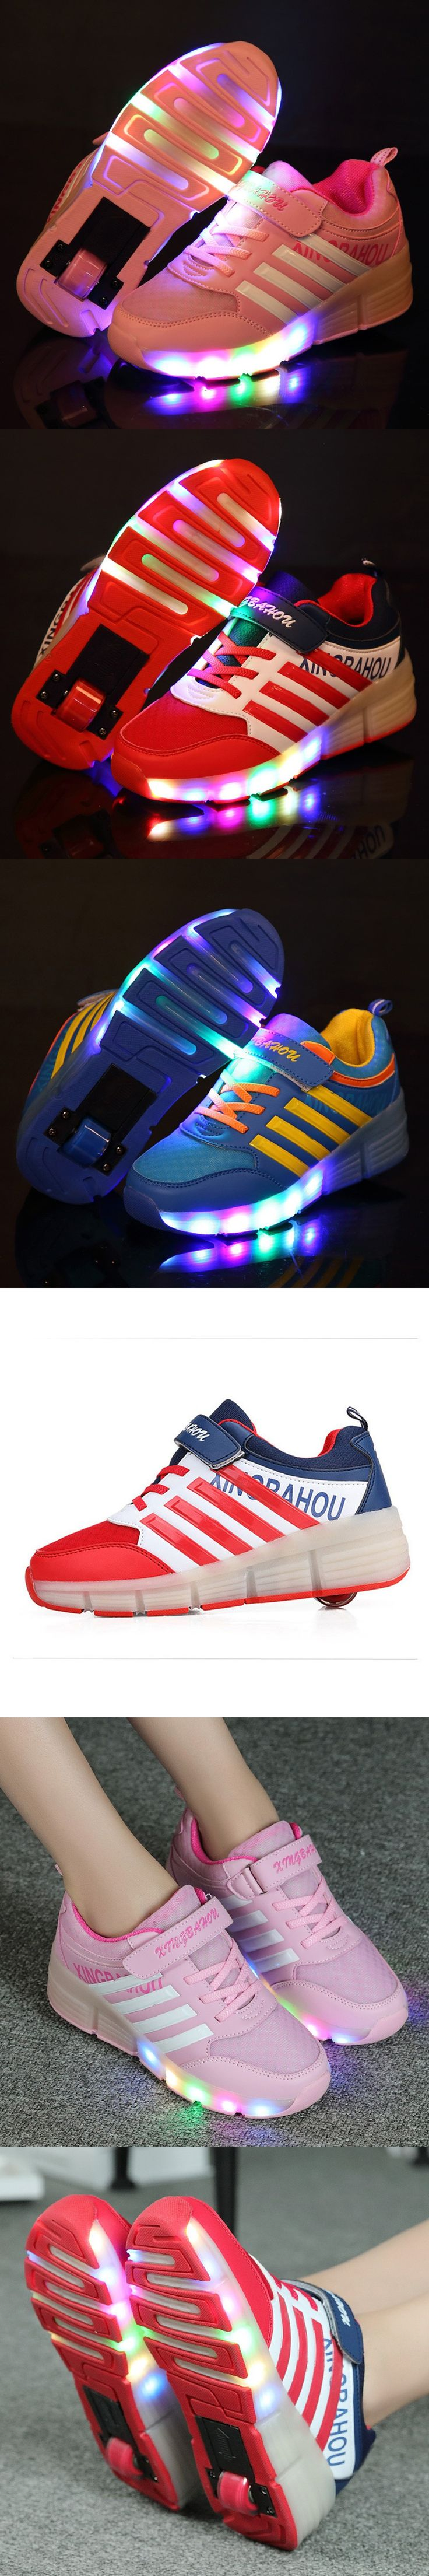 Led Lights Children Sneakers Shoes with Wheels Kids Roller Shoes Boys Girl Sneakers Zapatillas Con Ruedas Pink Black Red $22.49